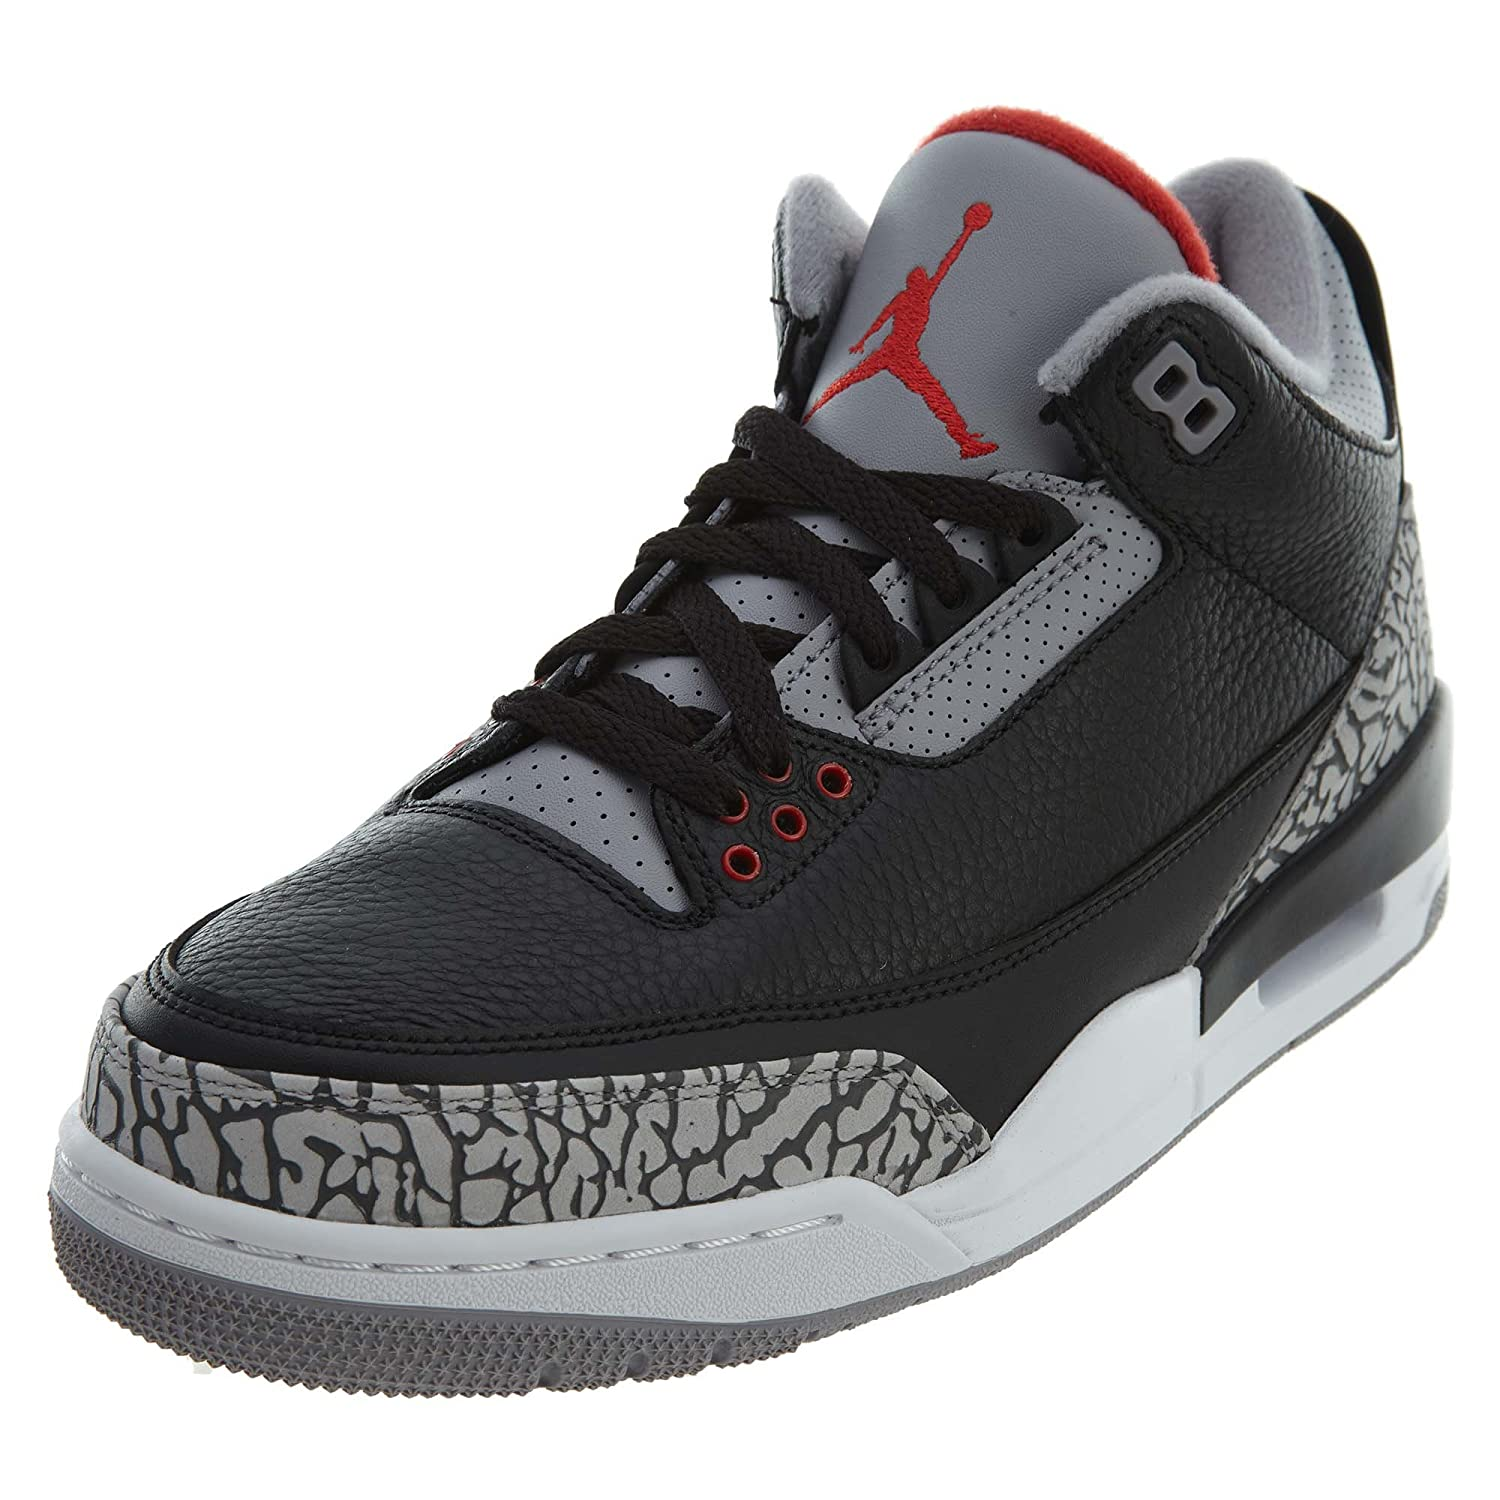 9f91d2f283b Amazon.com | Nike Men's Air Jordan 3 Retro OG Basketball Shoes (12 D(M) US,  Black/Fire Red-Cement Grey) | Basketball